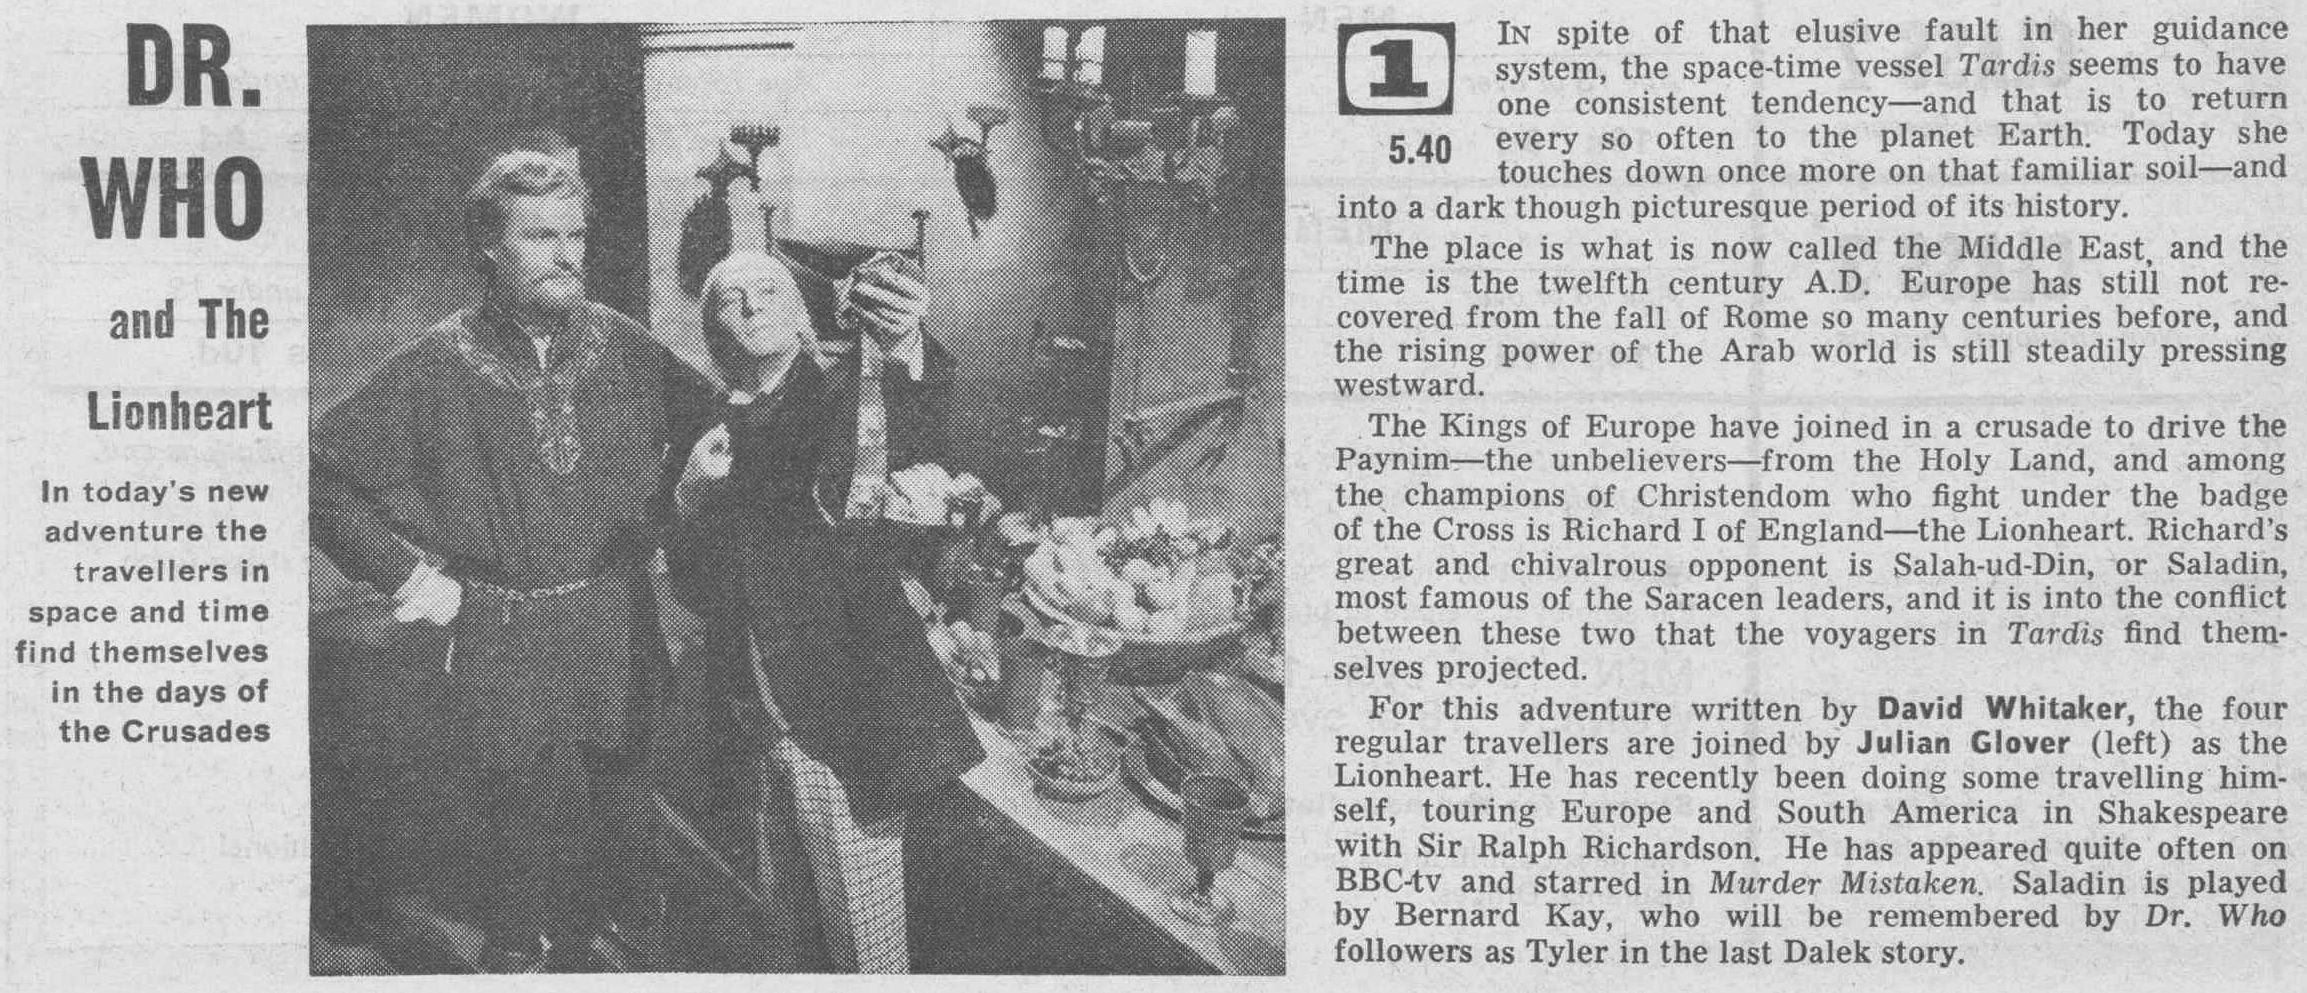 The Lion, BBC1, 27 March 1965 (Article) (Credit: Radio Times)